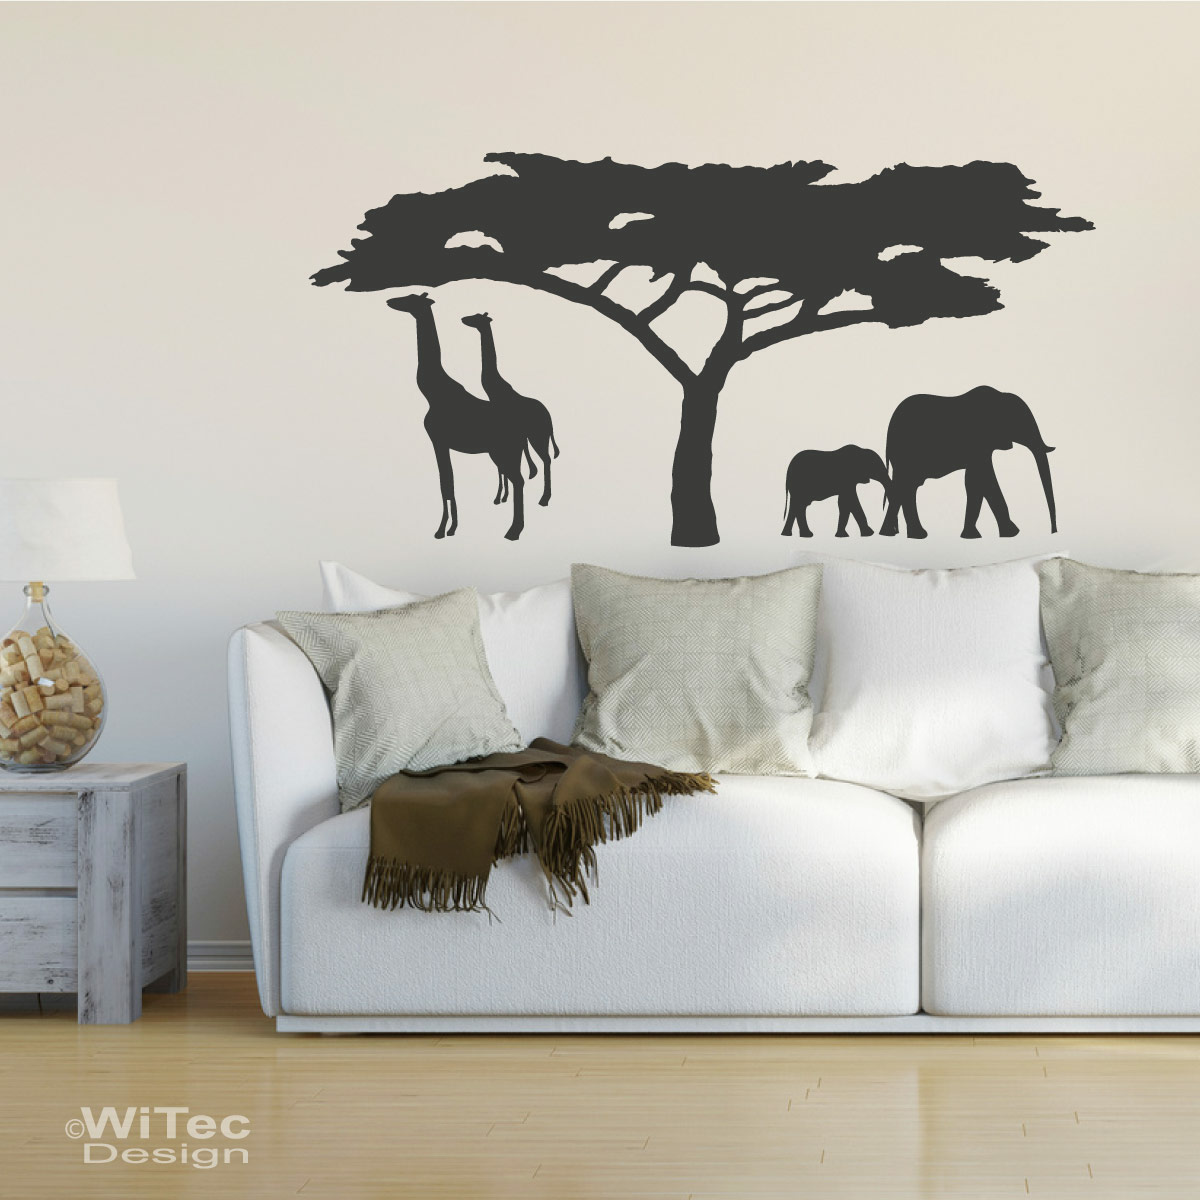 wandtattoo afrika wandaufkleber. Black Bedroom Furniture Sets. Home Design Ideas